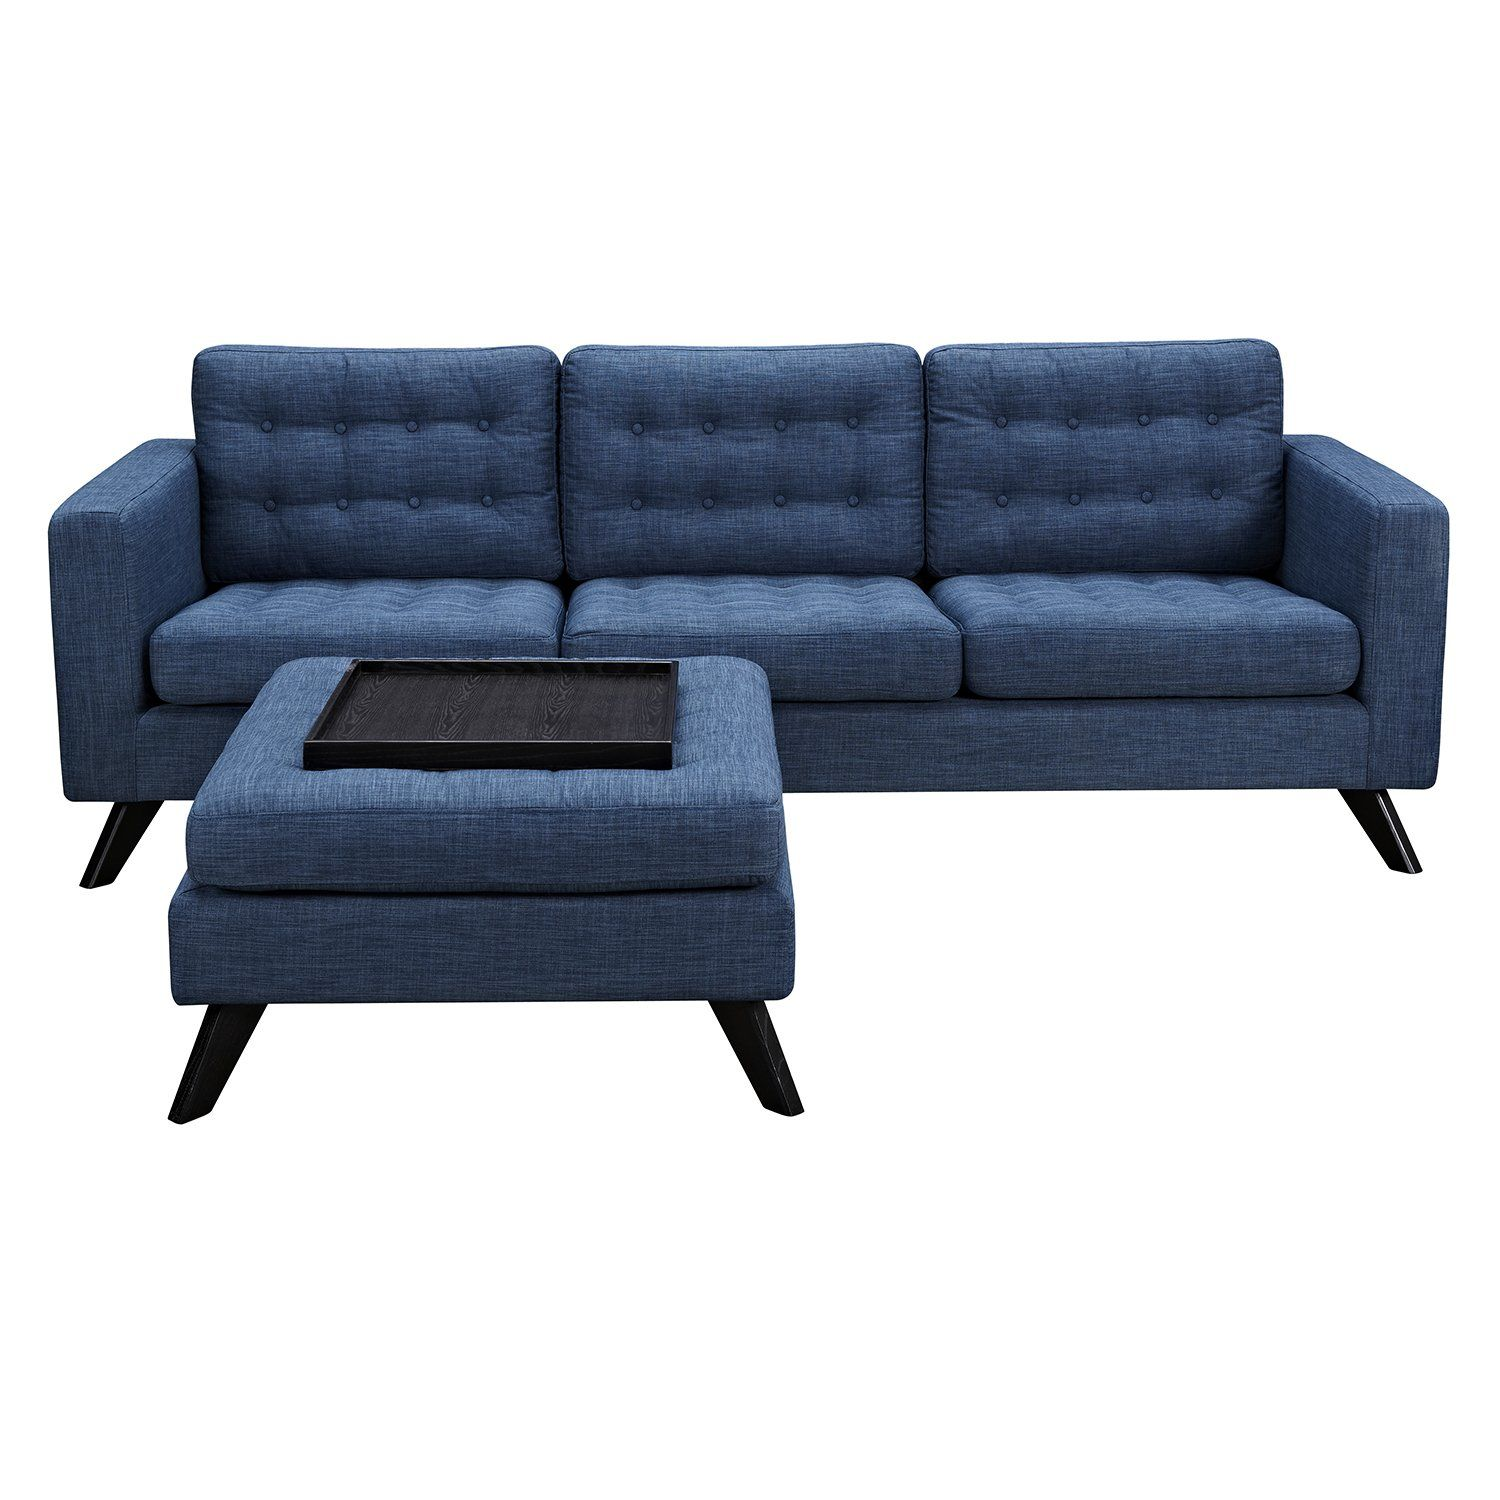 Best Mina Sofa And Ottoman Set In Tufted Stone Blue Fabric With 400 x 300